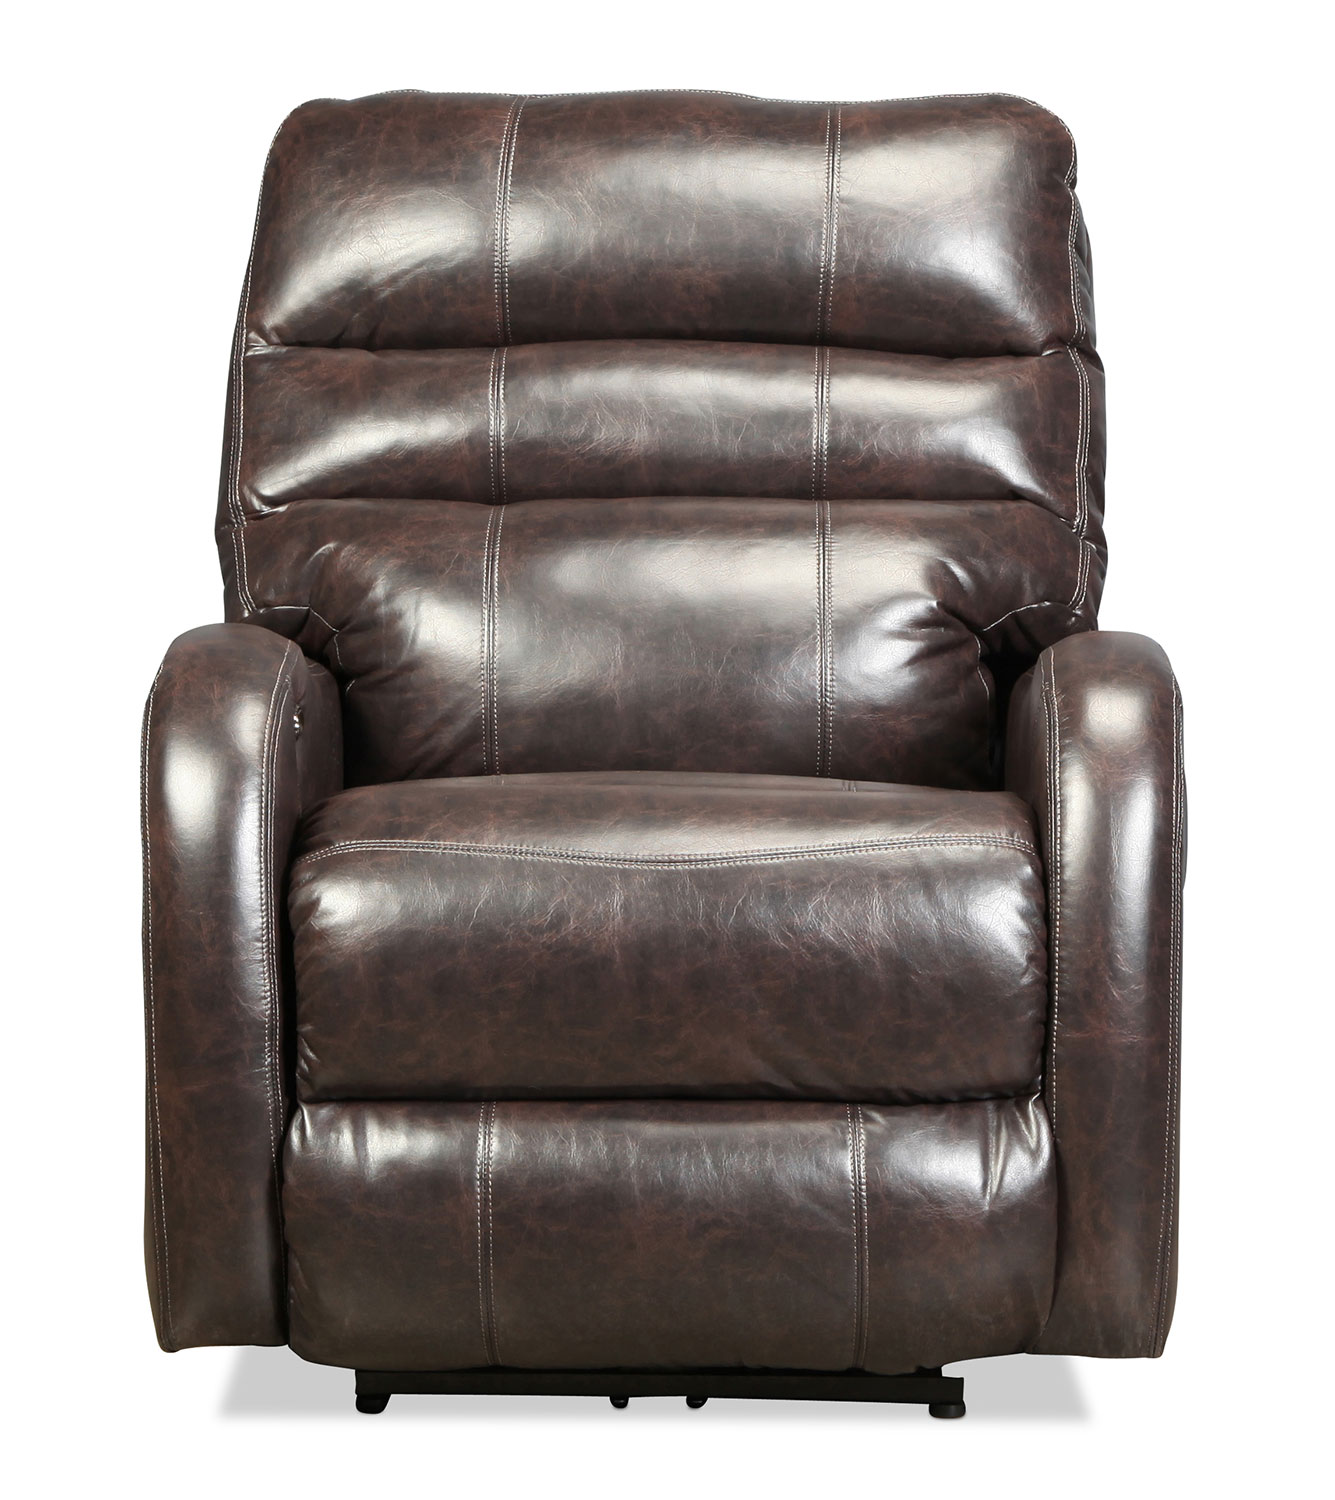 Living Room Furniture - Cannes Power Recliner - Coffee